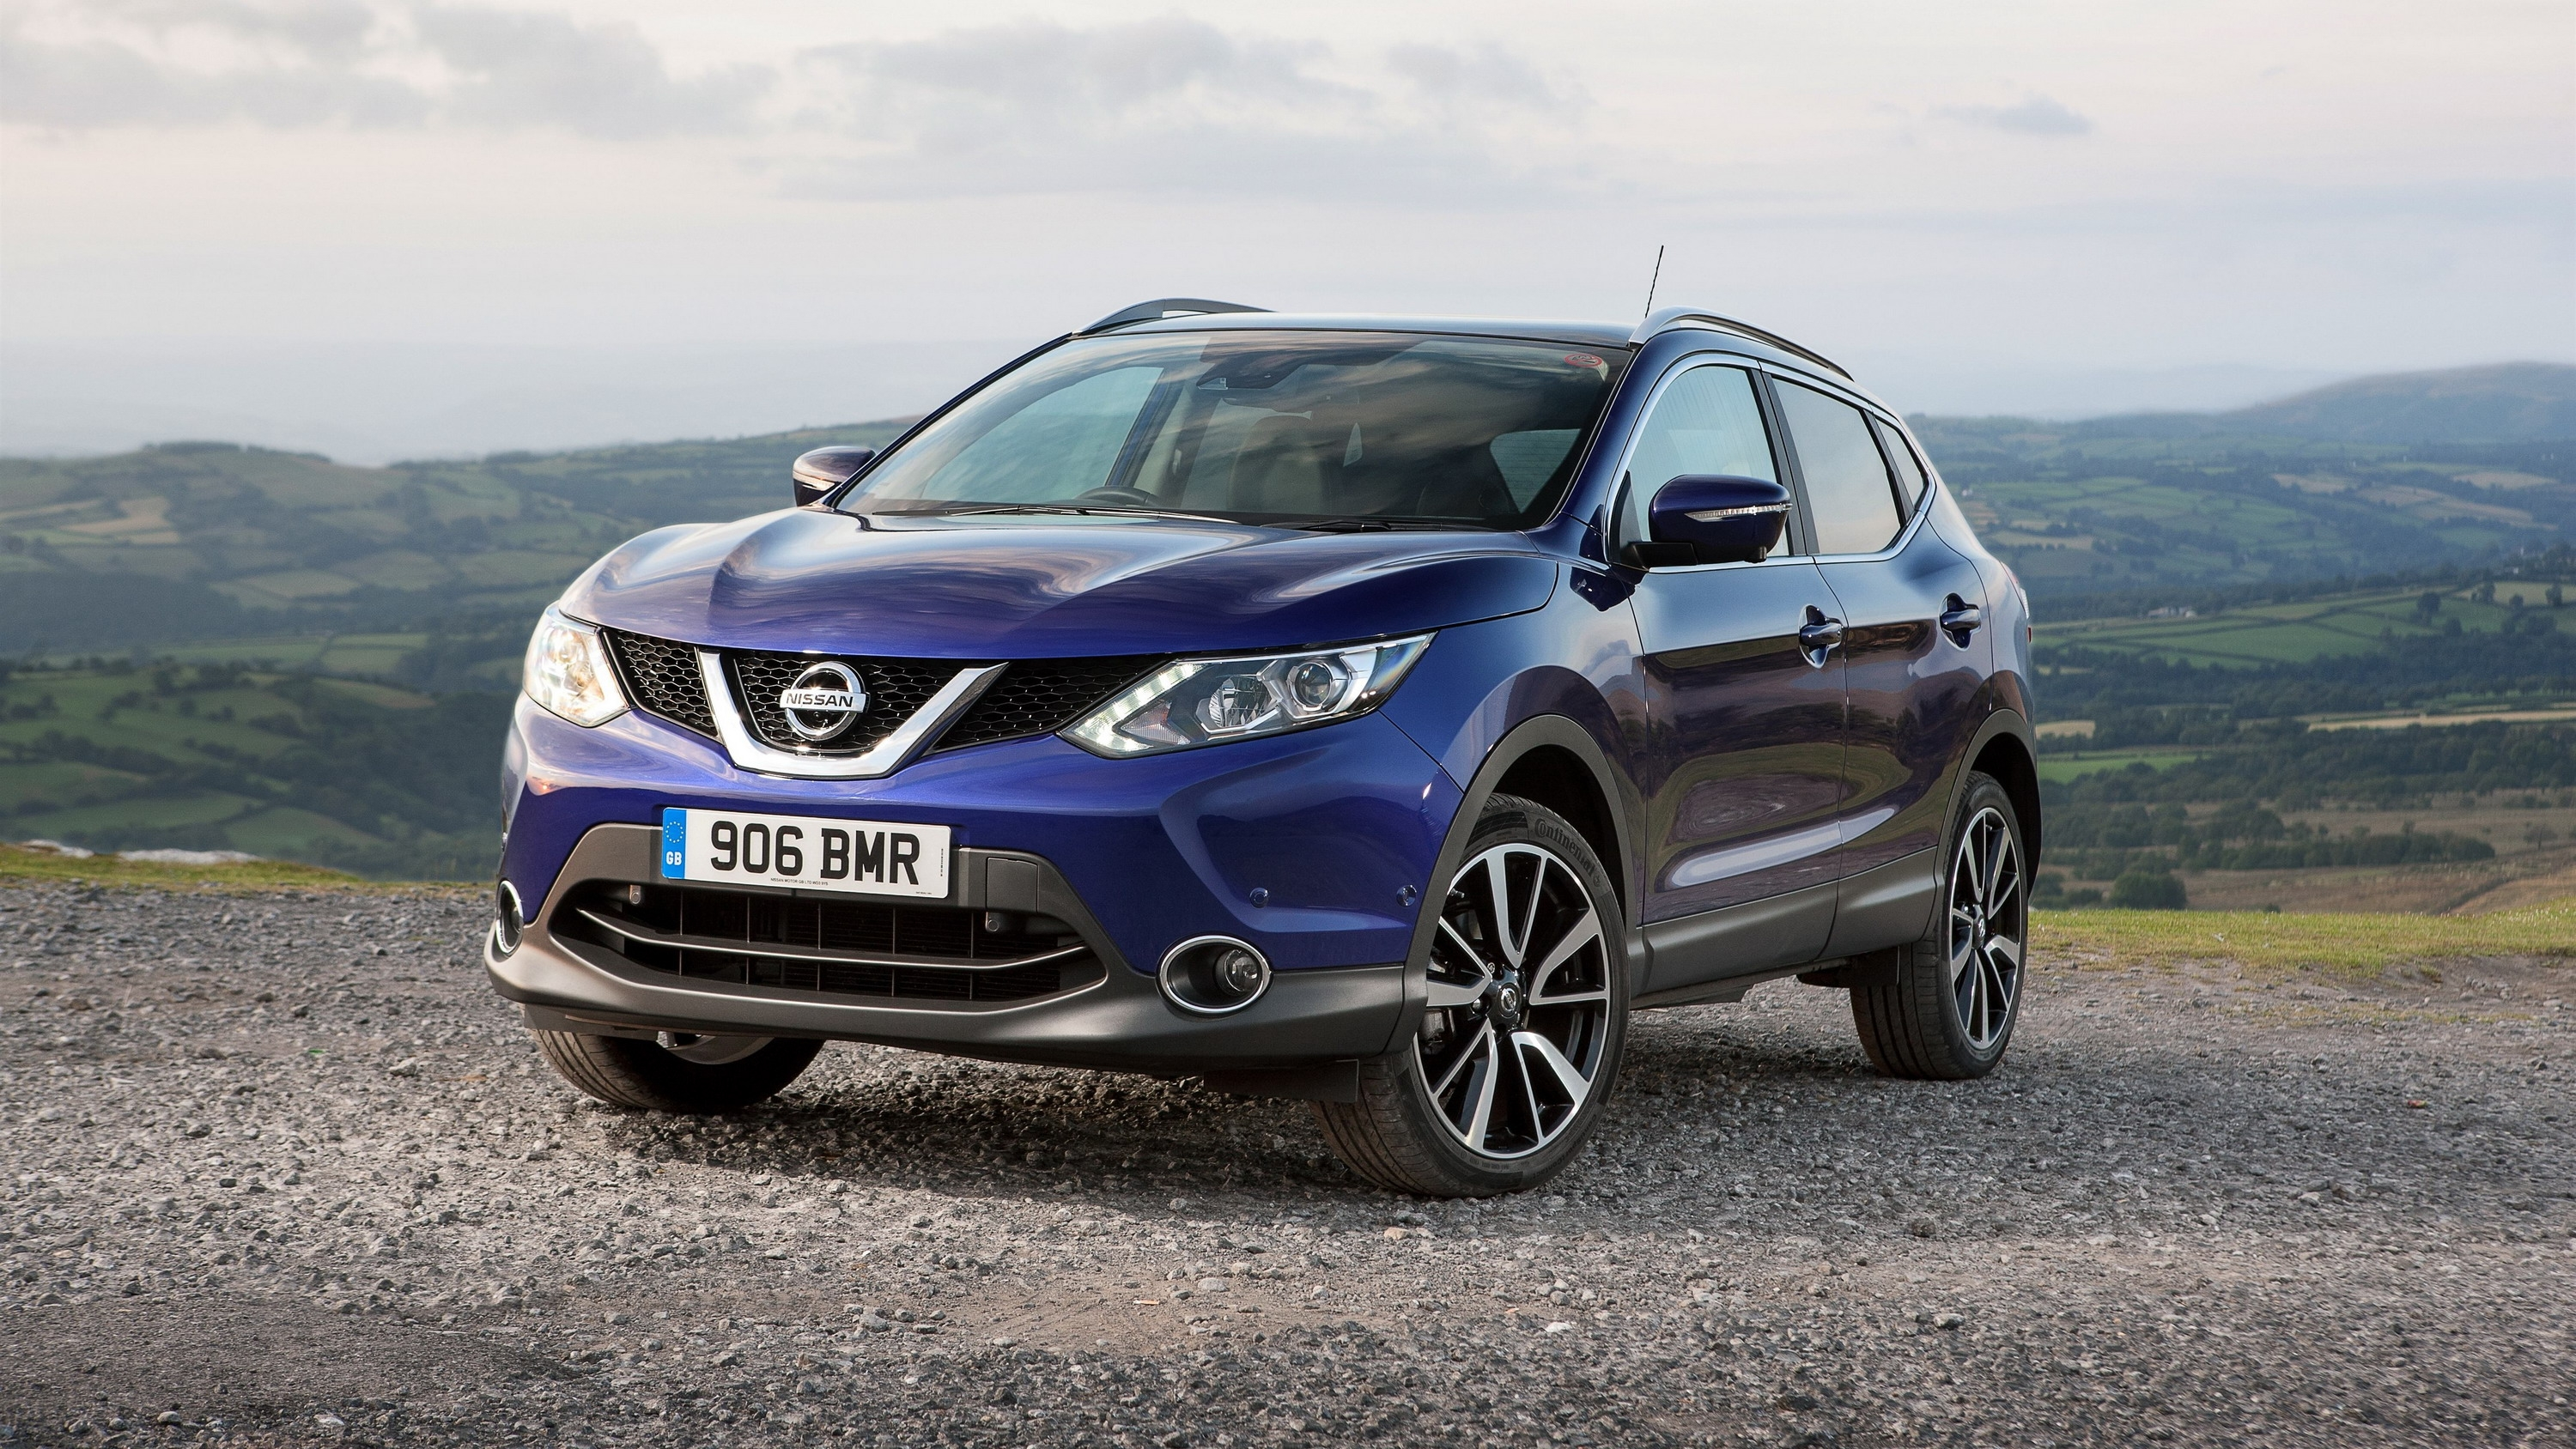 Nissan Qashqai Reviews Specs Prices Photos And Videos Top Speed Basic Car Engine Diagram 5 10 From 14 Votes 6